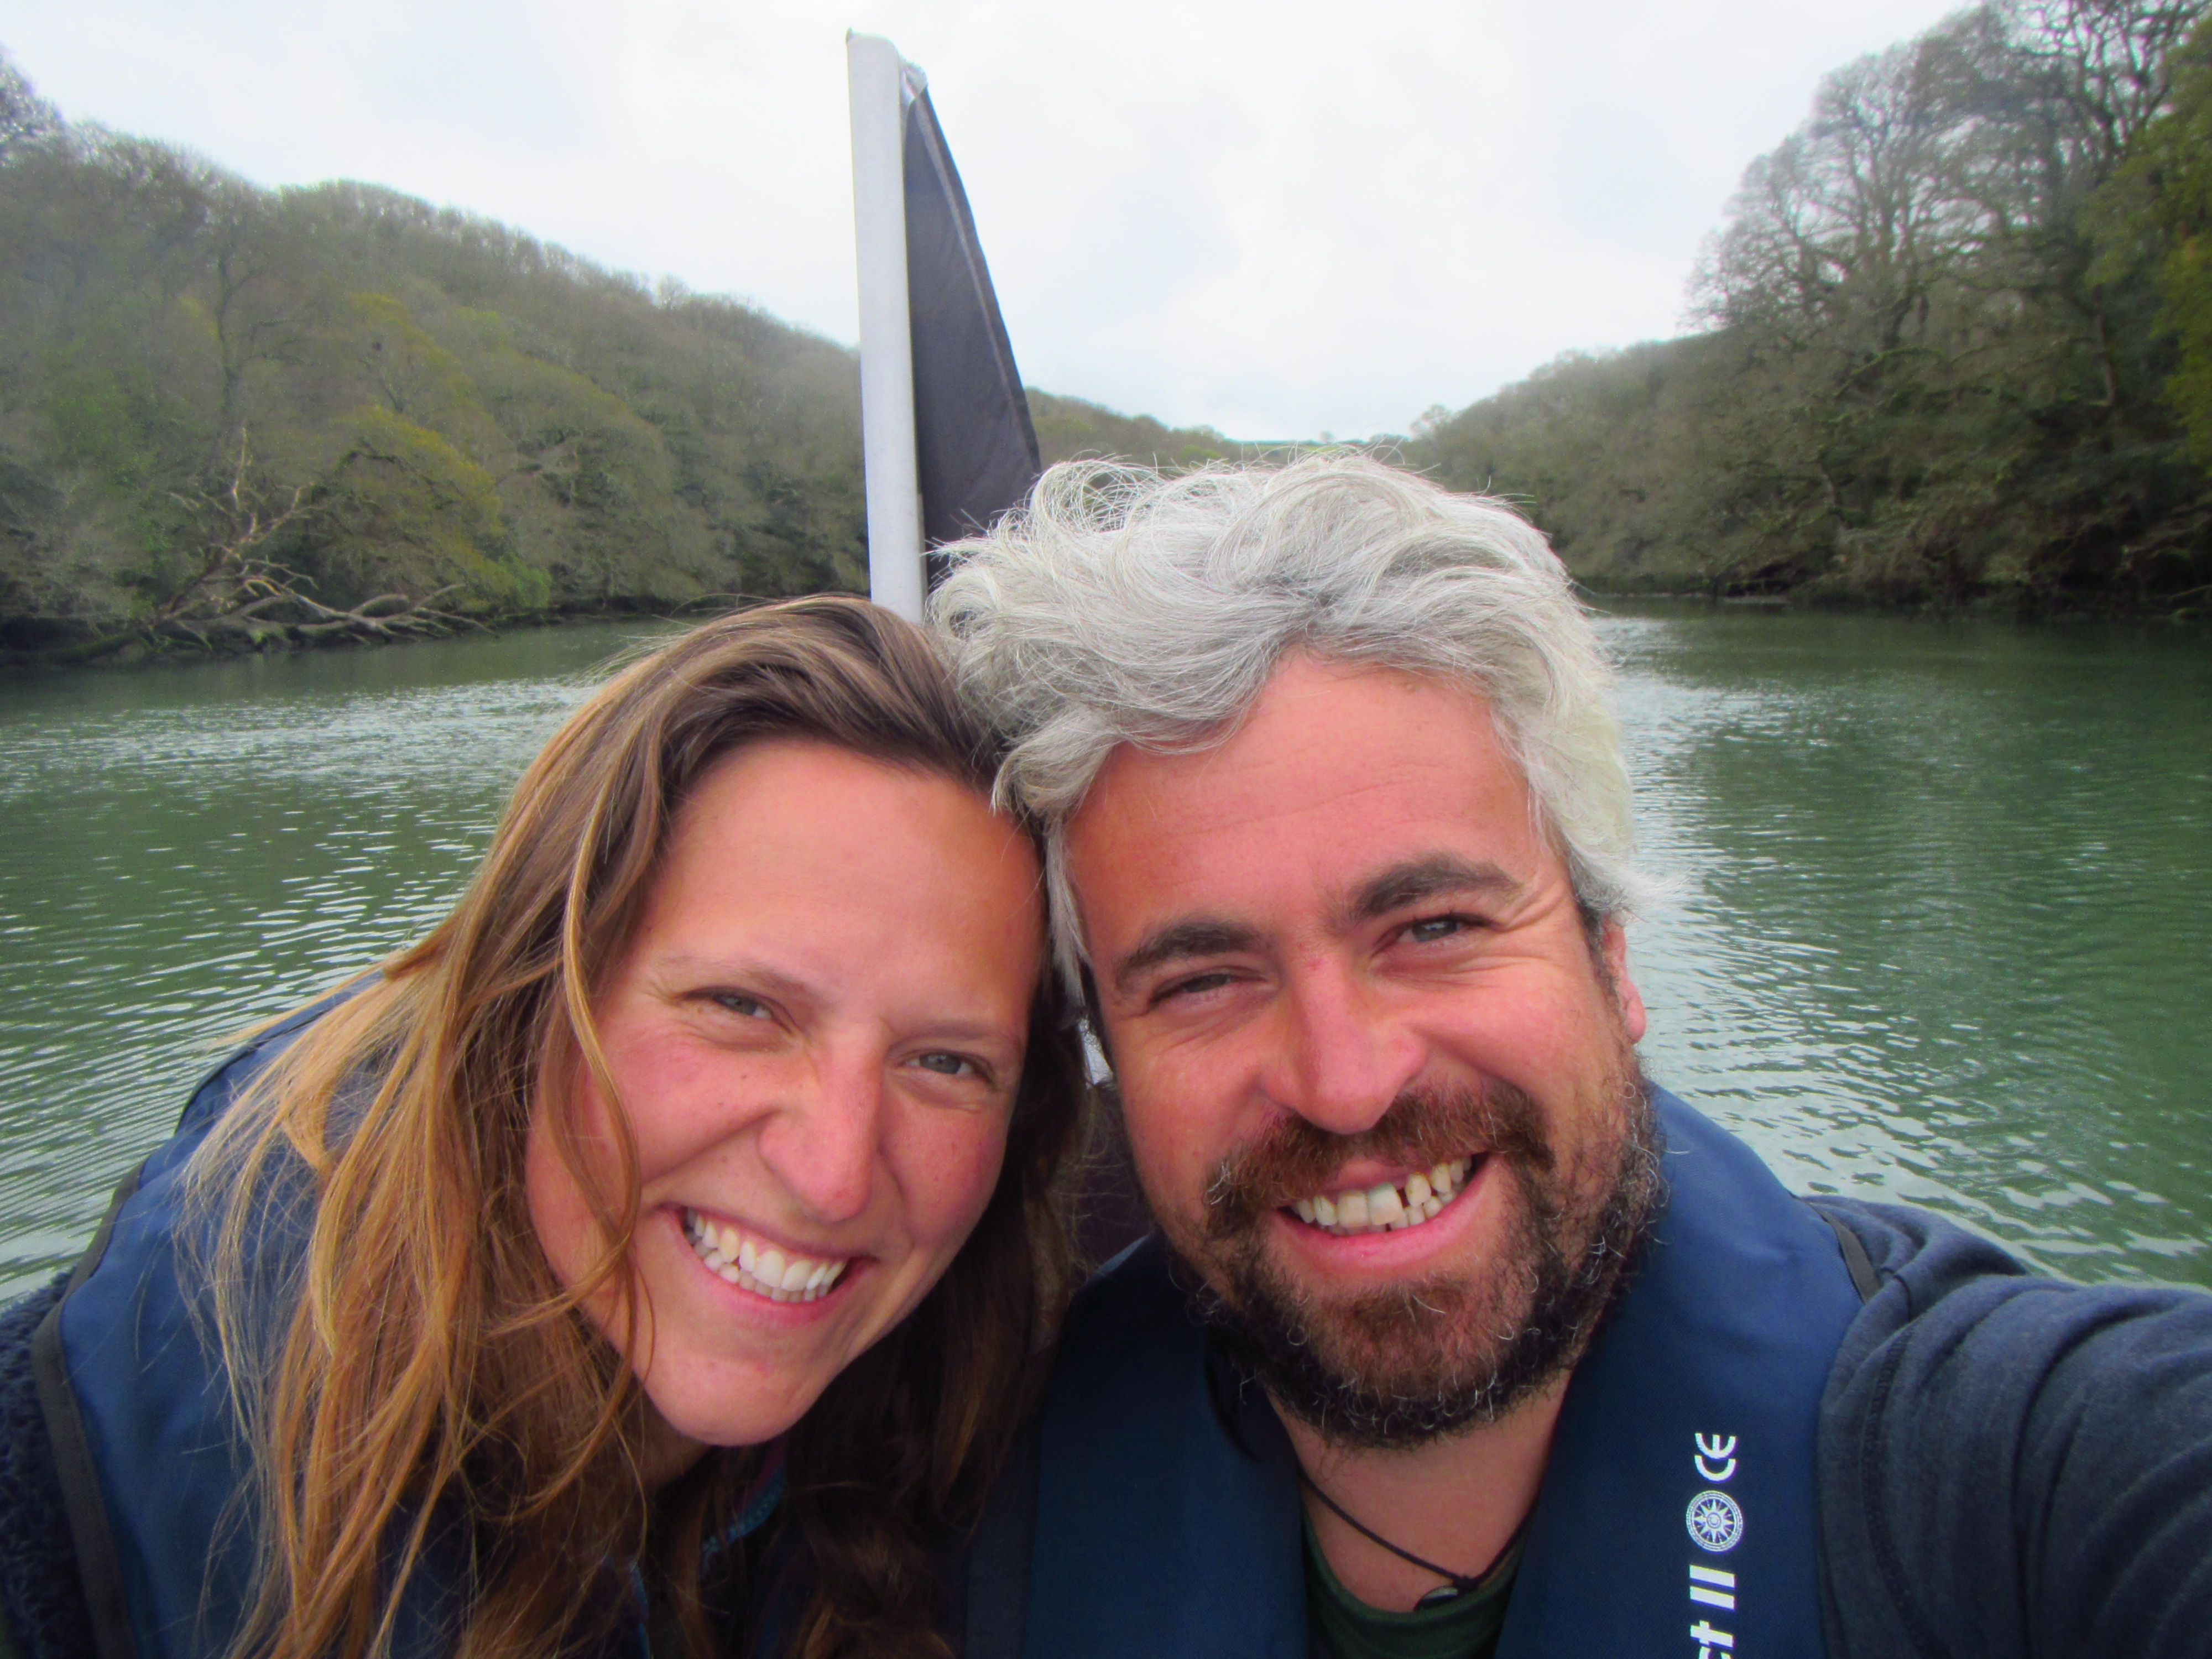 Tom and Hetty, Koru Kayaking take over Helford River Cruises